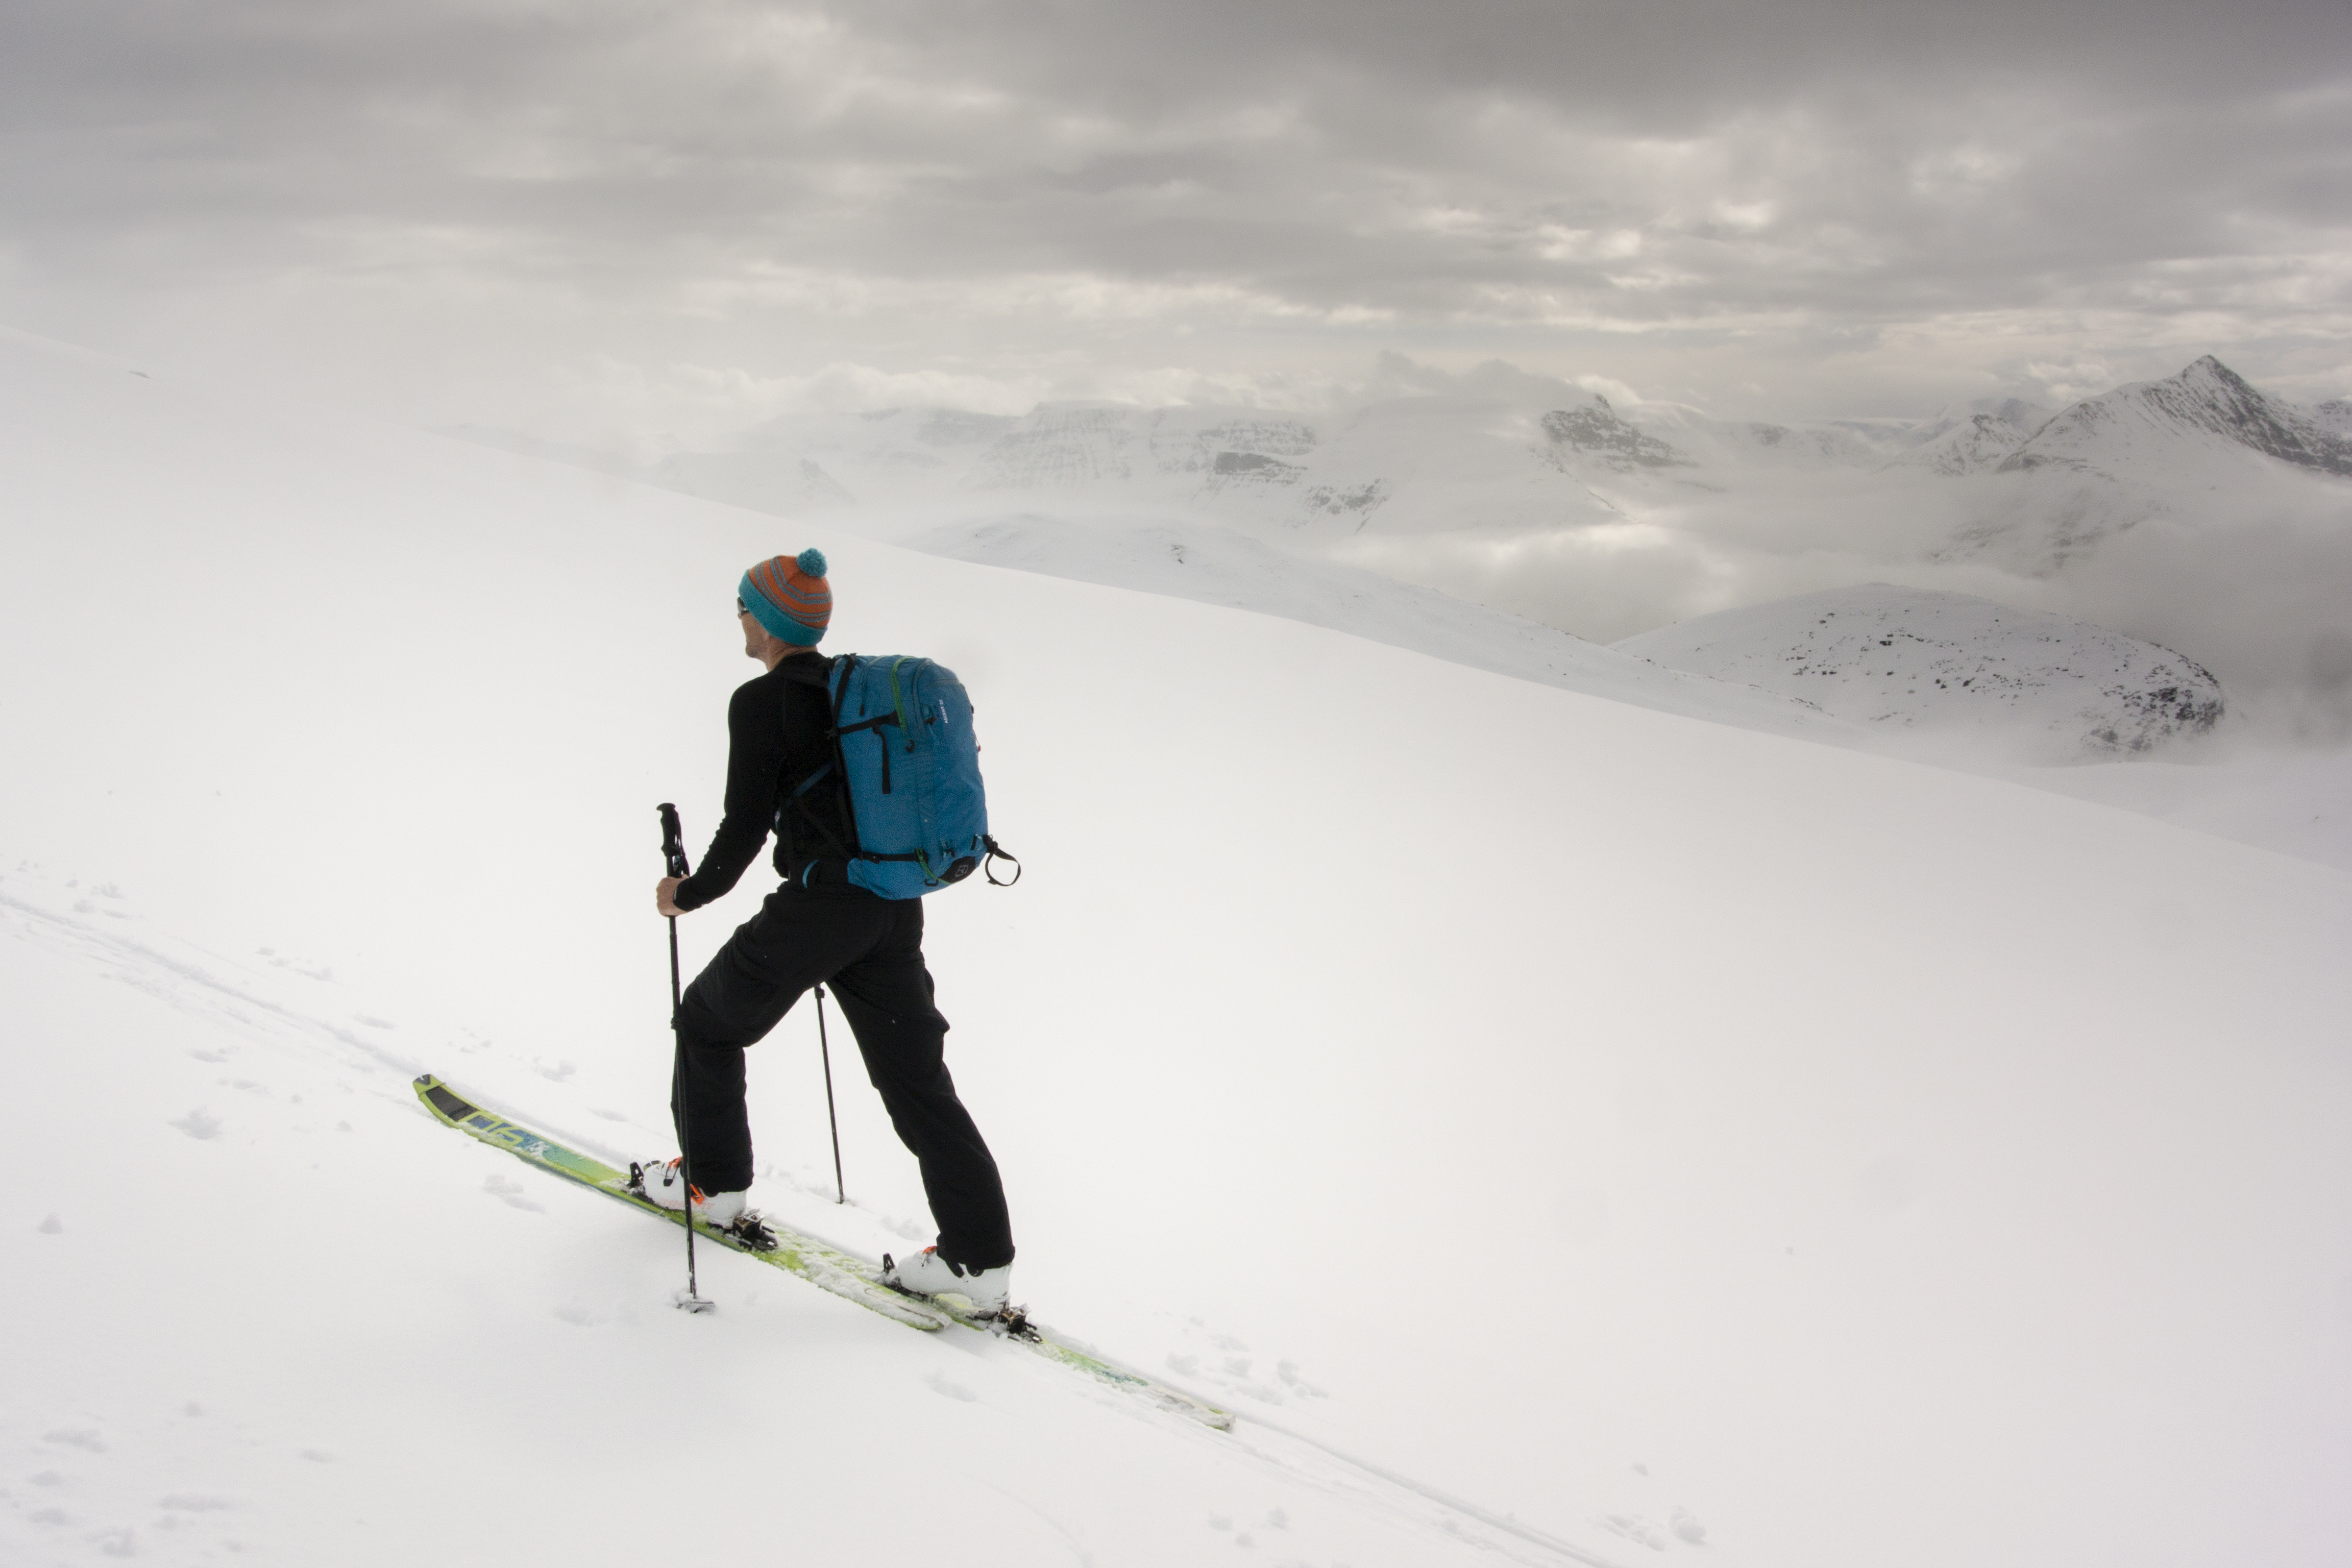 f46ec8ef00ca LESS IS MORE - LIGHTWEIGHT SKI TOURING KIT IN THE SPOTLIGHT - Fall ...